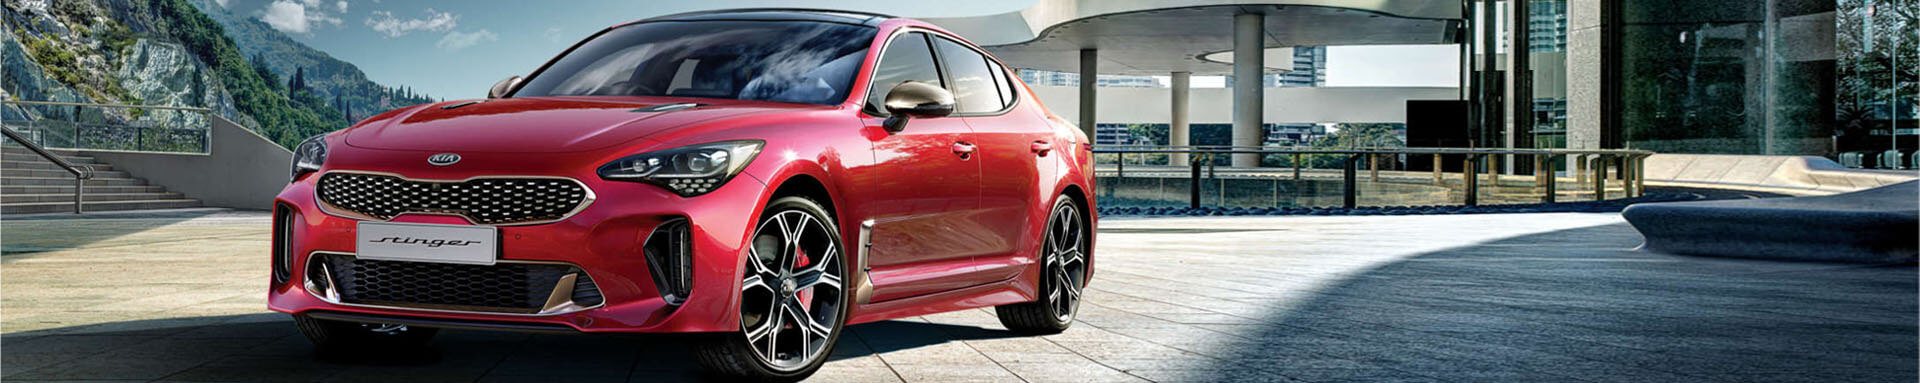 Mantello Kia Stinger